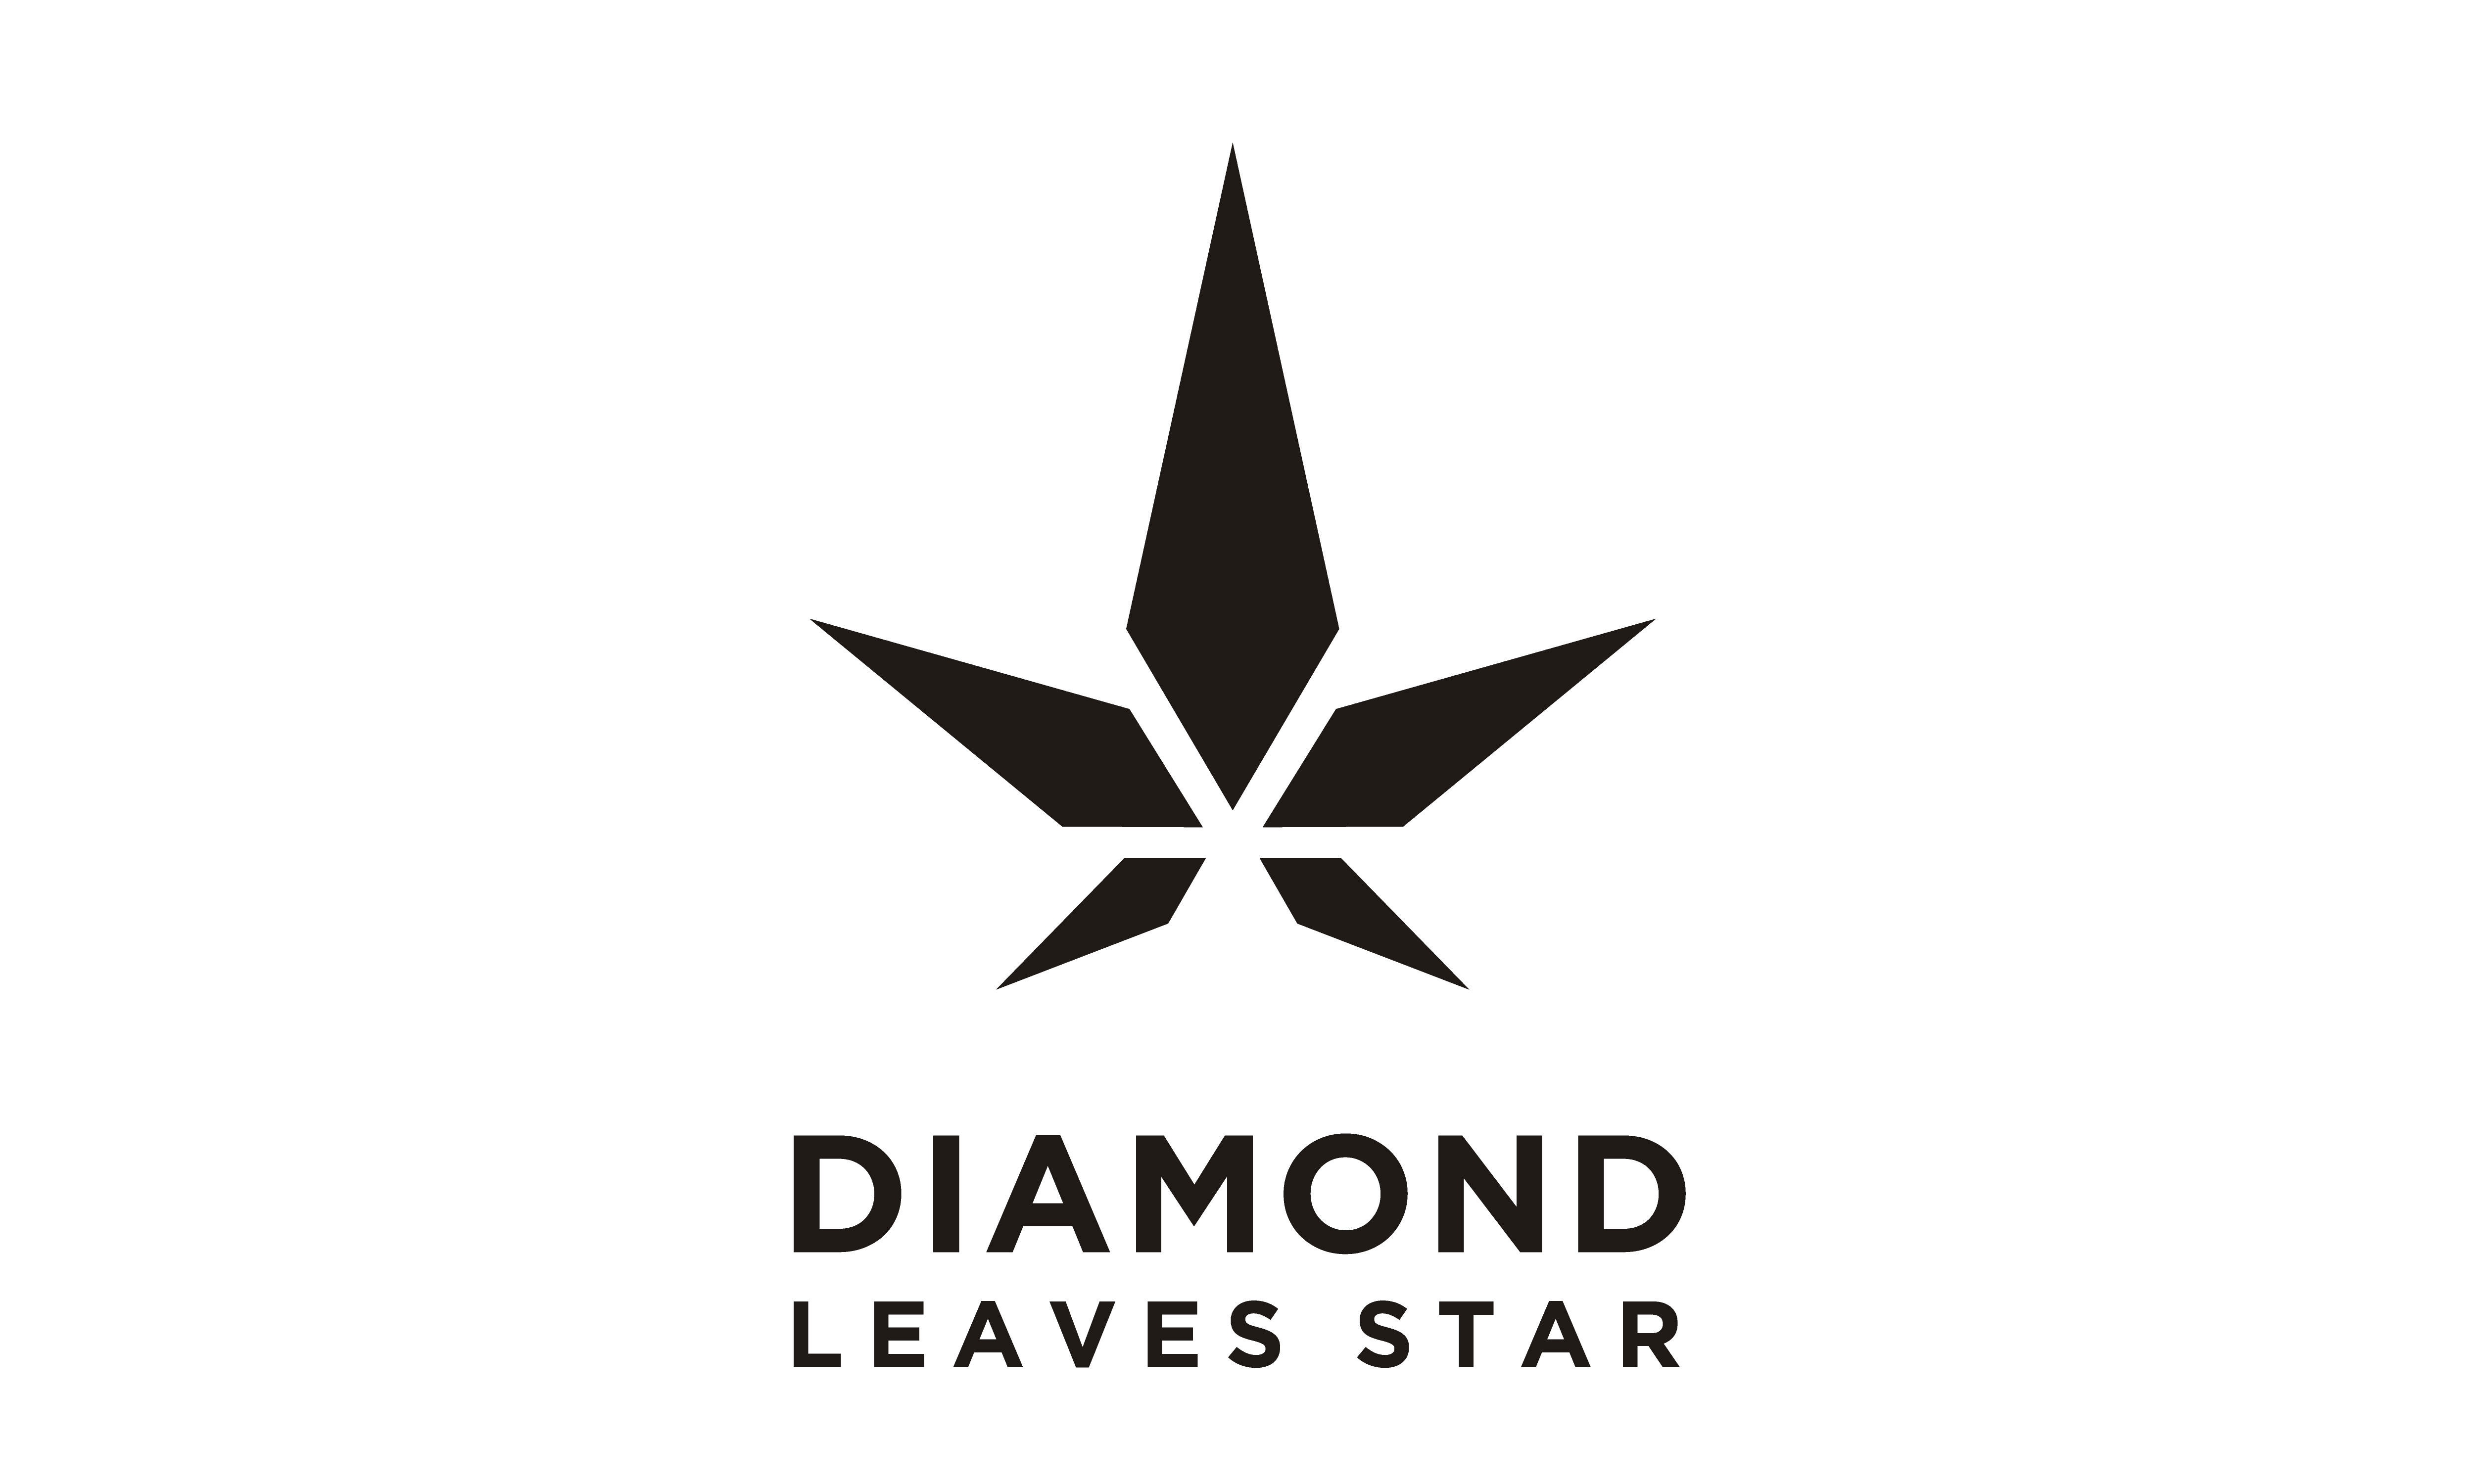 Download Free Diamond Star Cannabis Leaf Hemp Cbd Logo Graphic By Enola99d for Cricut Explore, Silhouette and other cutting machines.